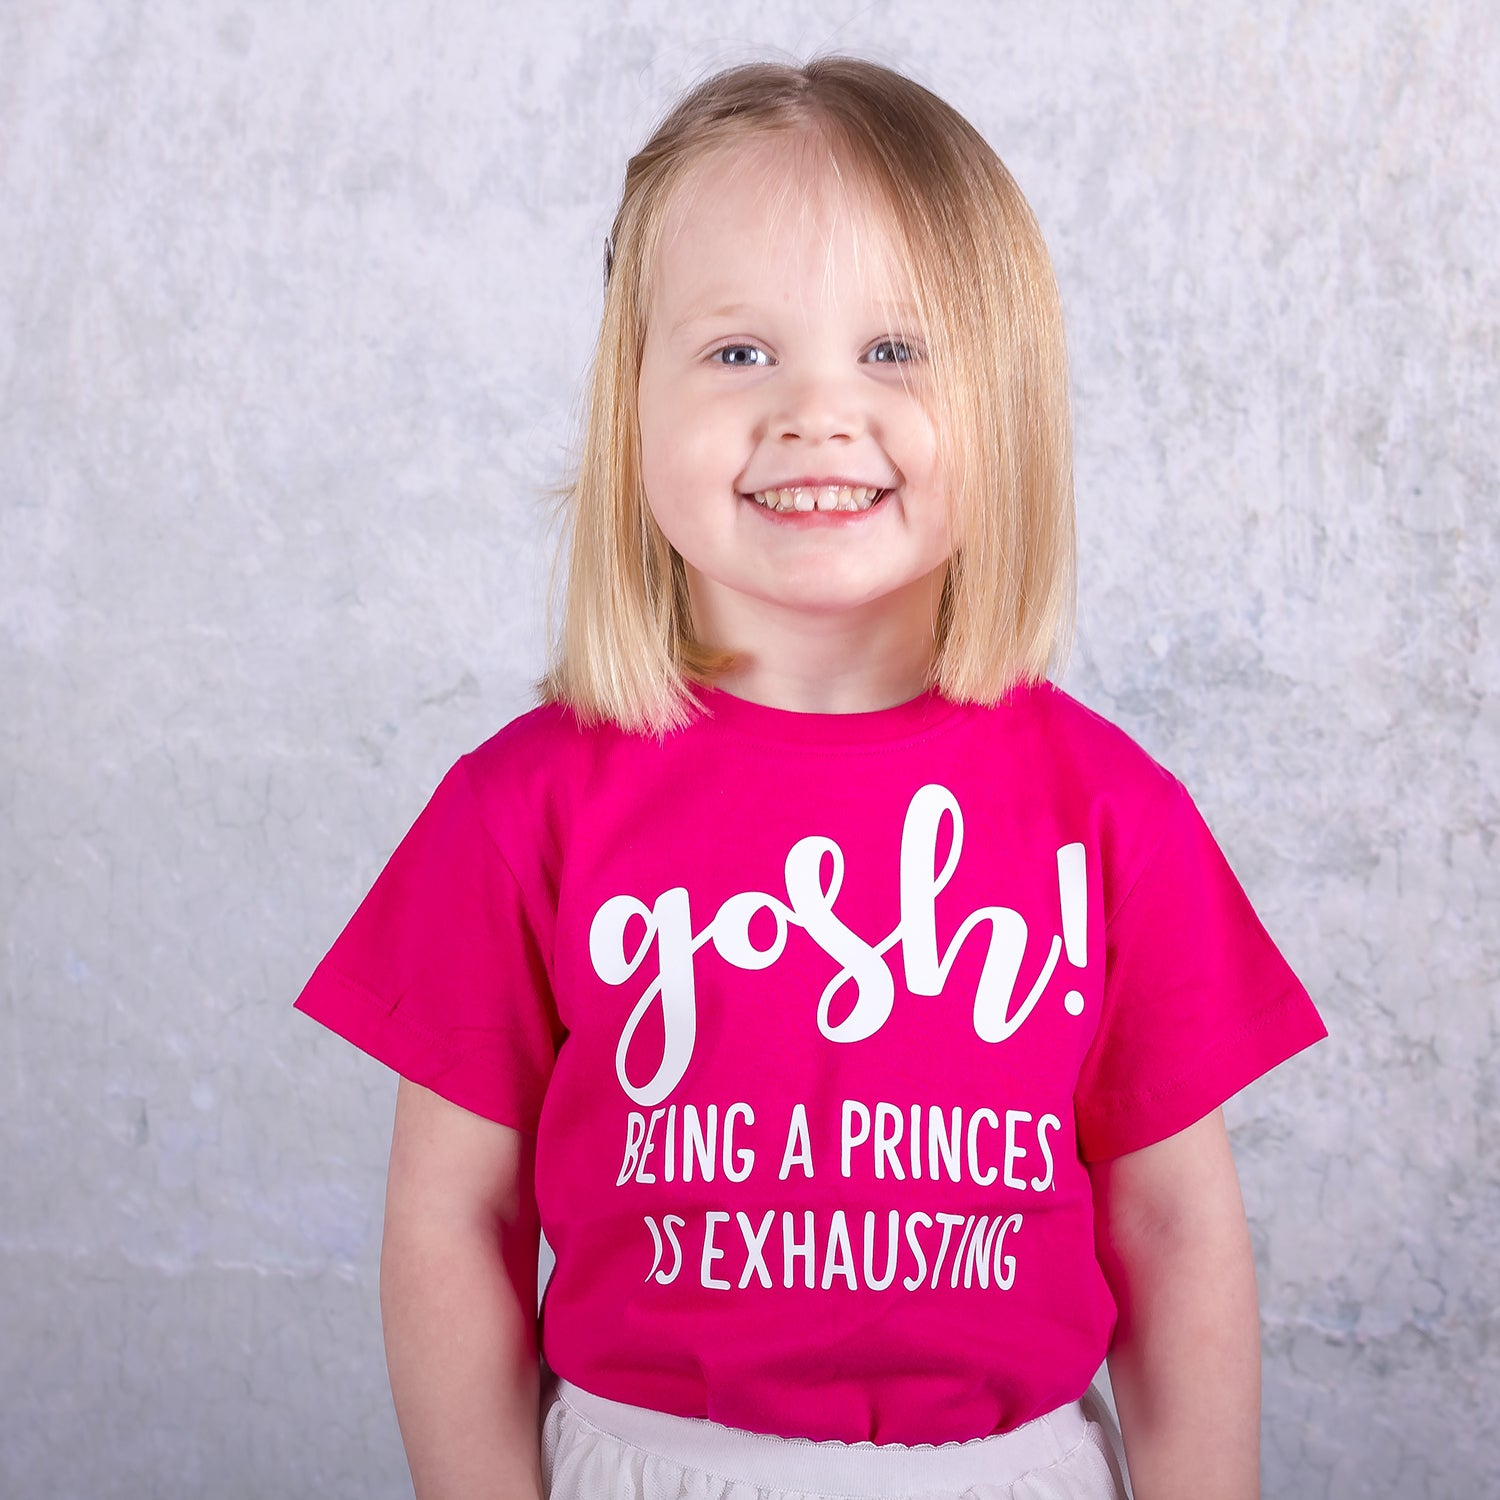 'Gosh! Being a princess is exhausting' kids shortsleeve shirt